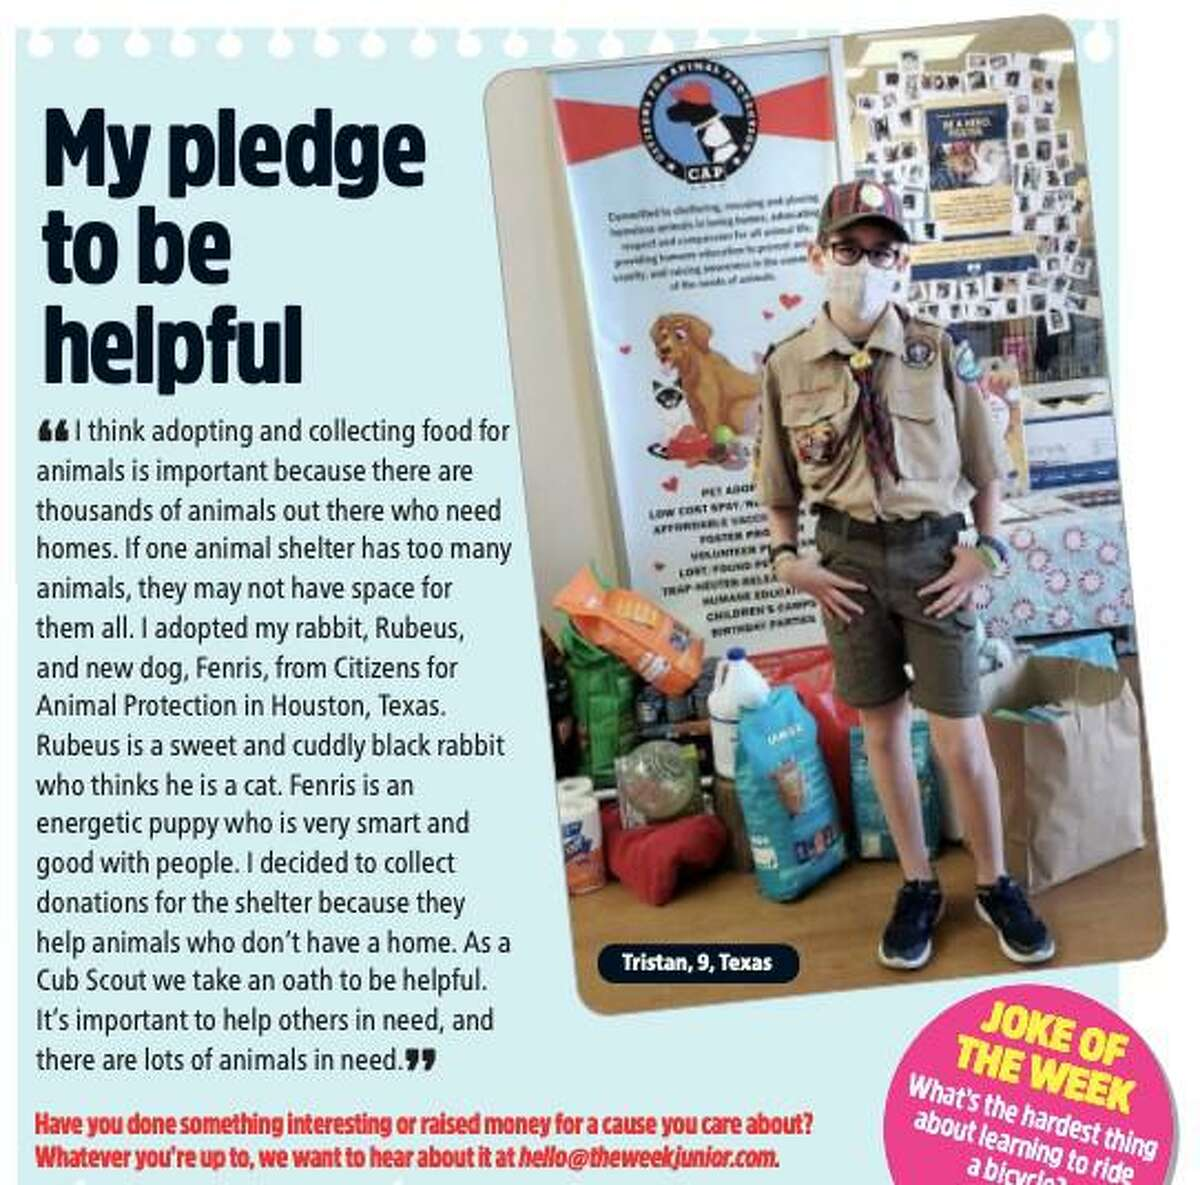 Tristan Davis is not only a Cub Scout and volunteer, but also a published author in